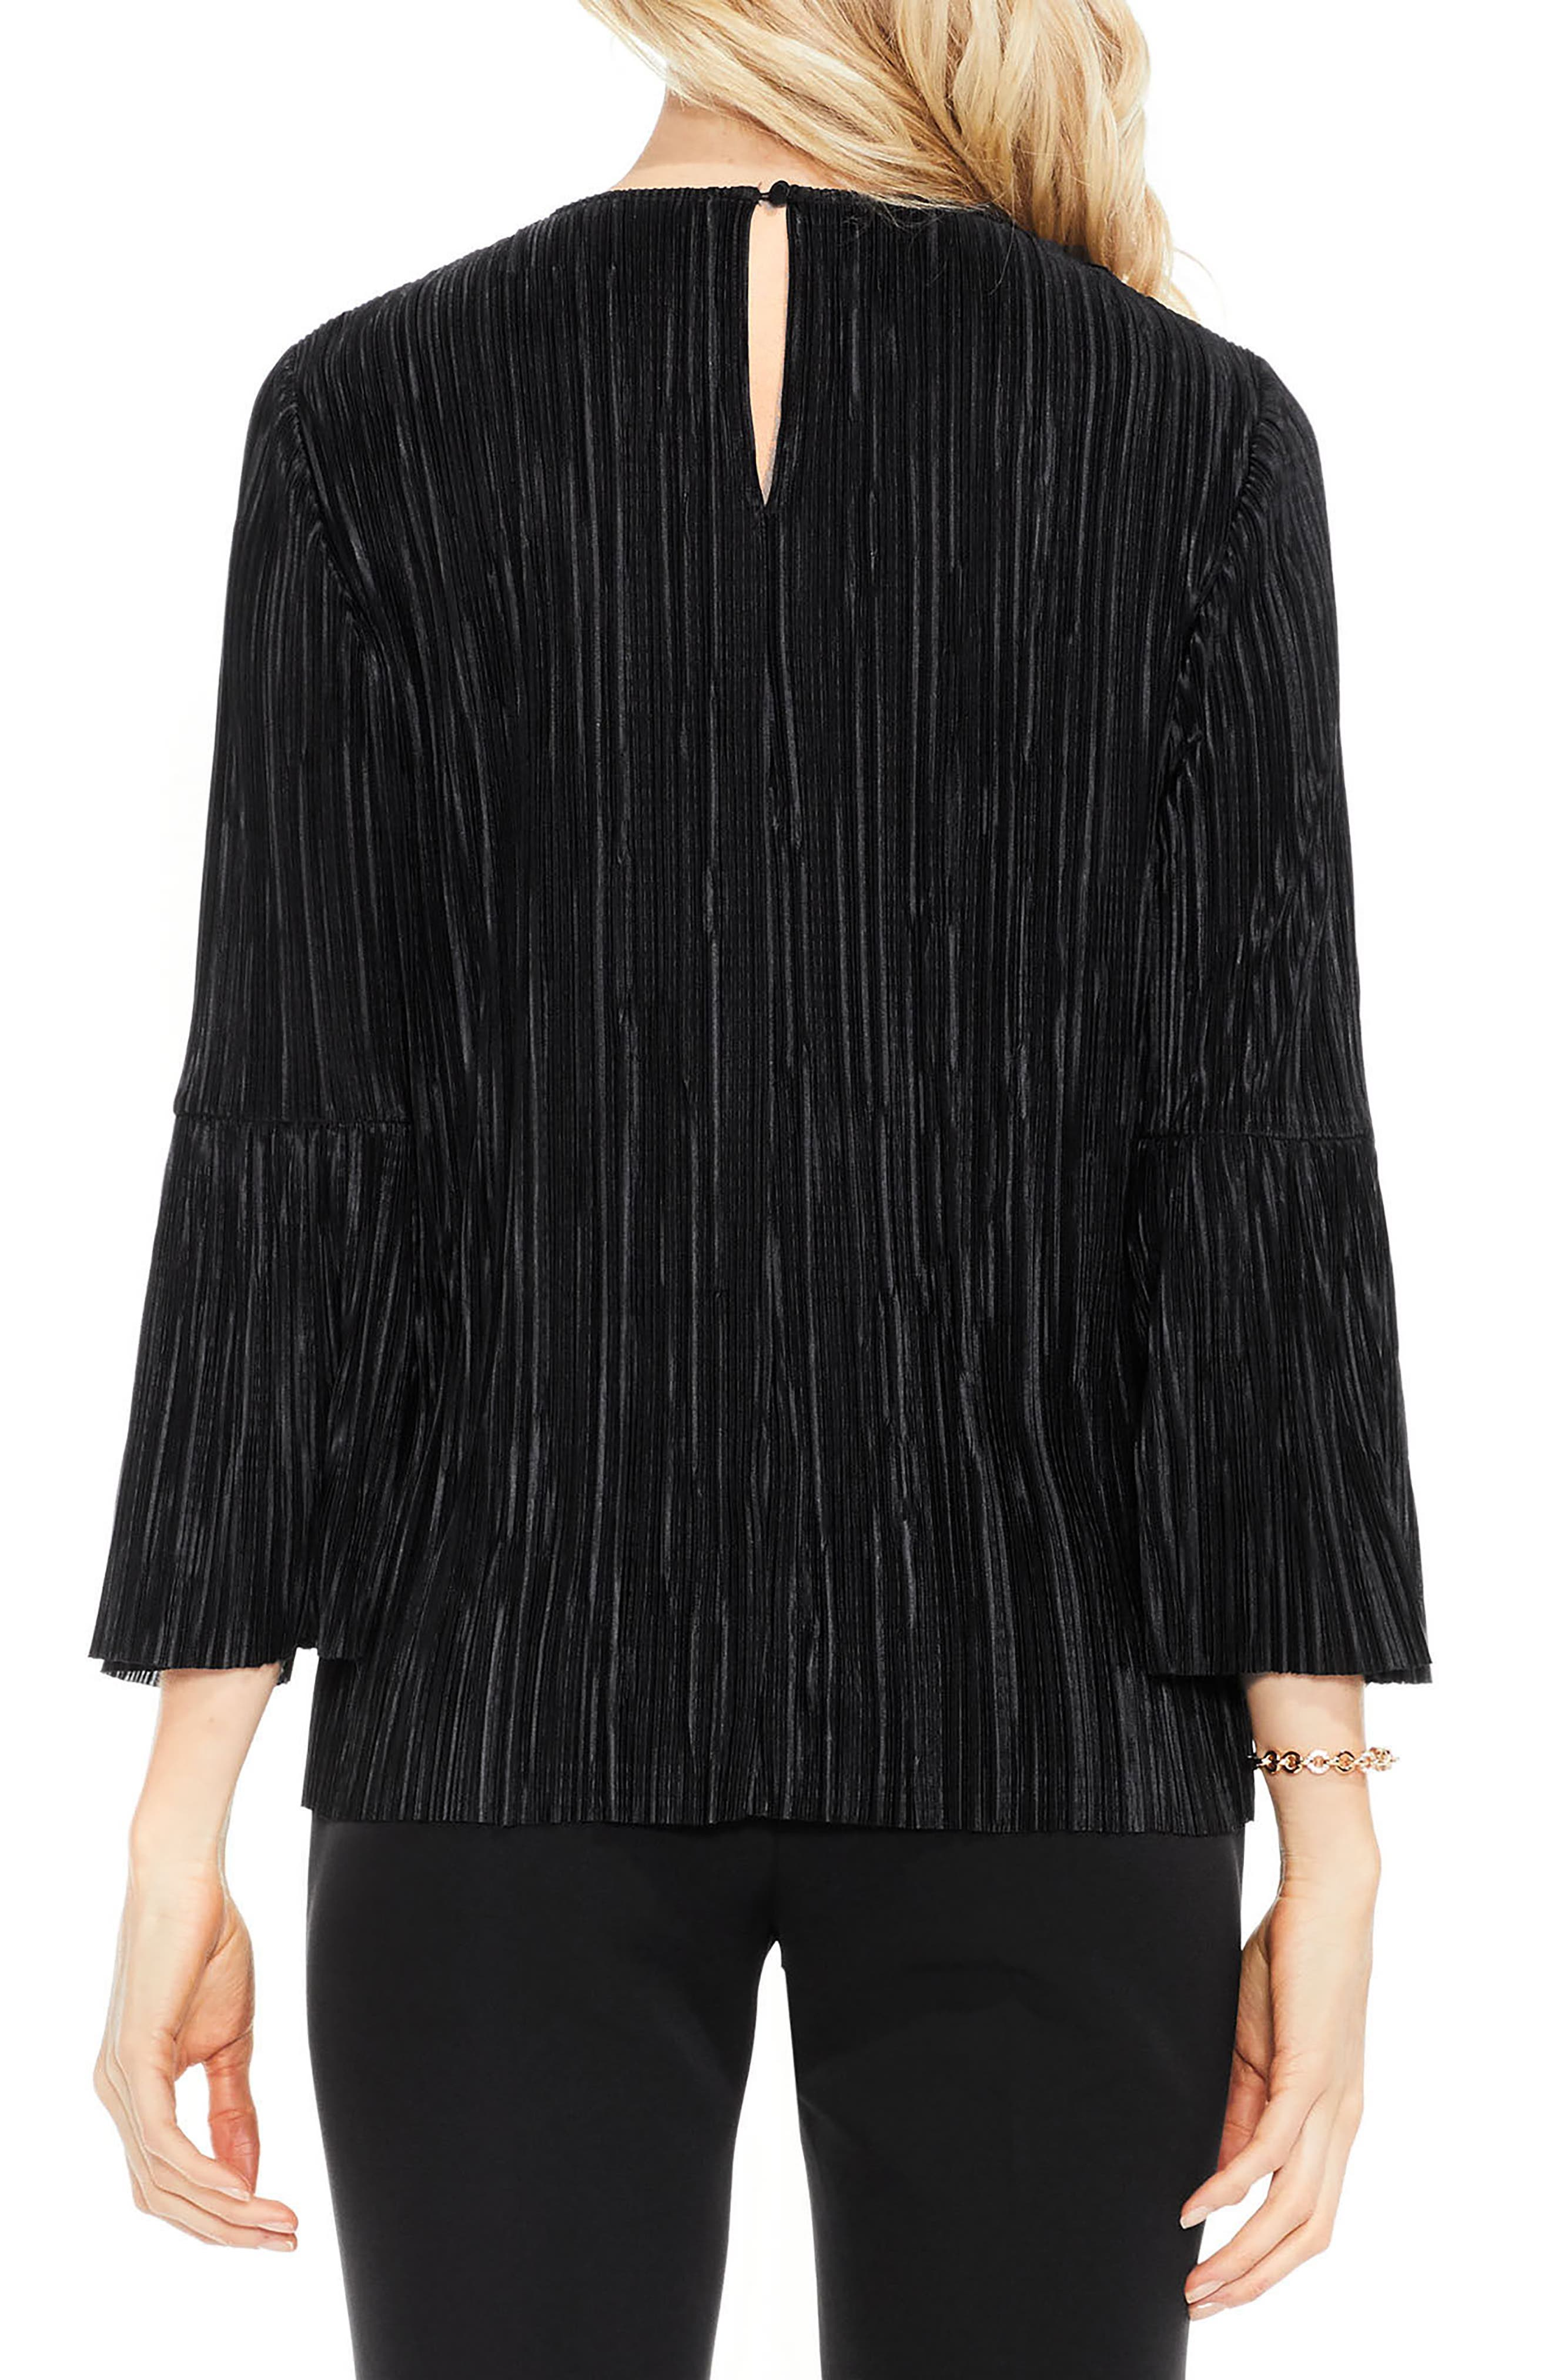 Alternate Image 2  - Vince Camuto Pleated Knit Top (Regular & Petite)